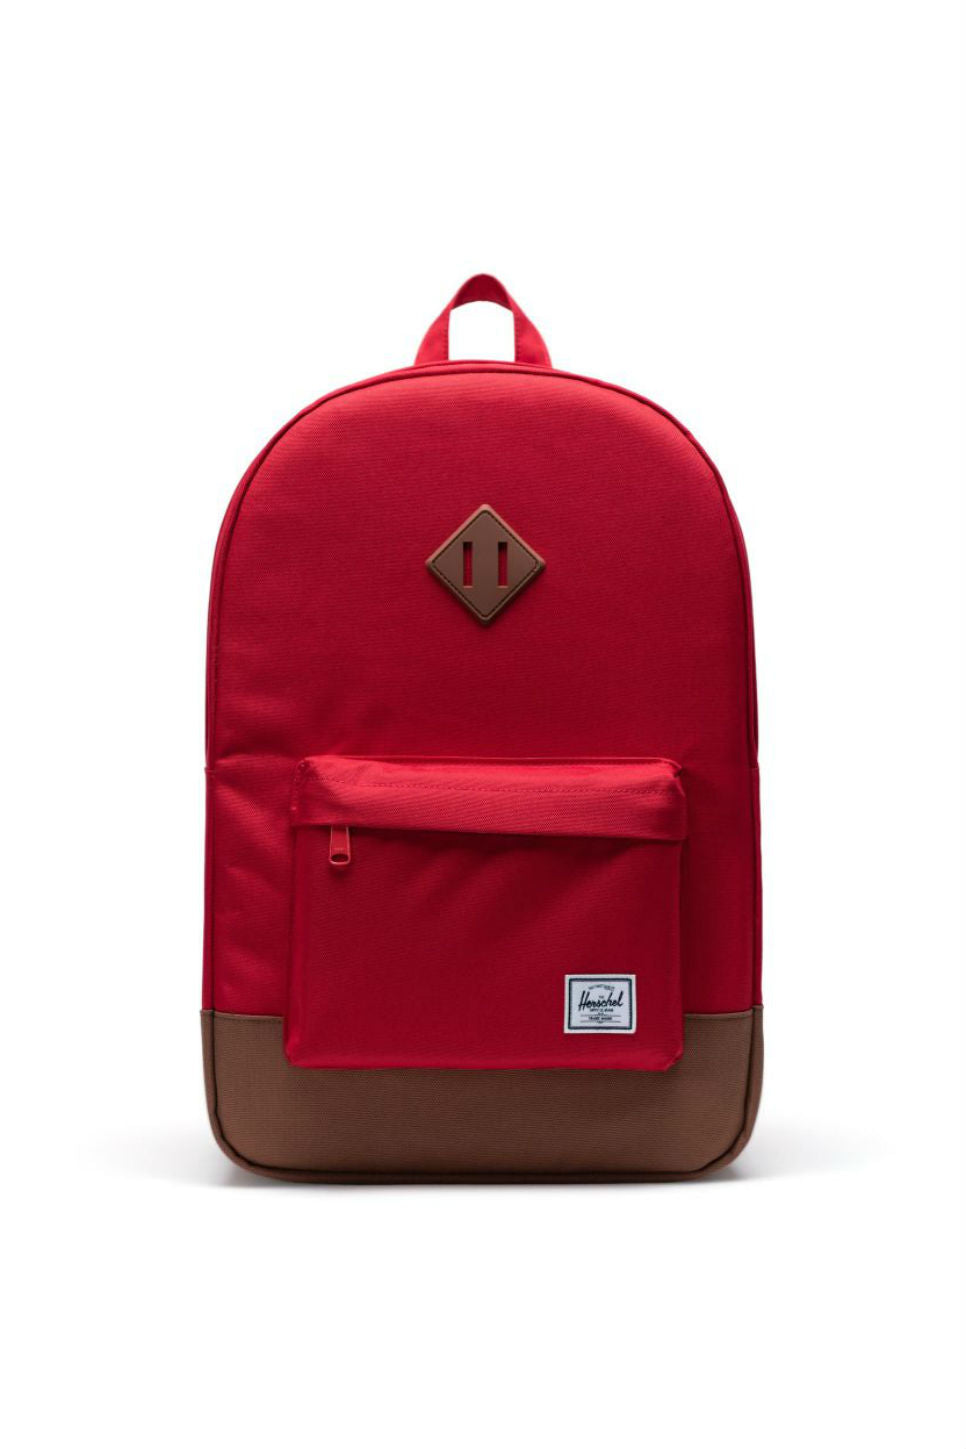 Herschel - Heritage Pack - Red/Saddle Brown - Front